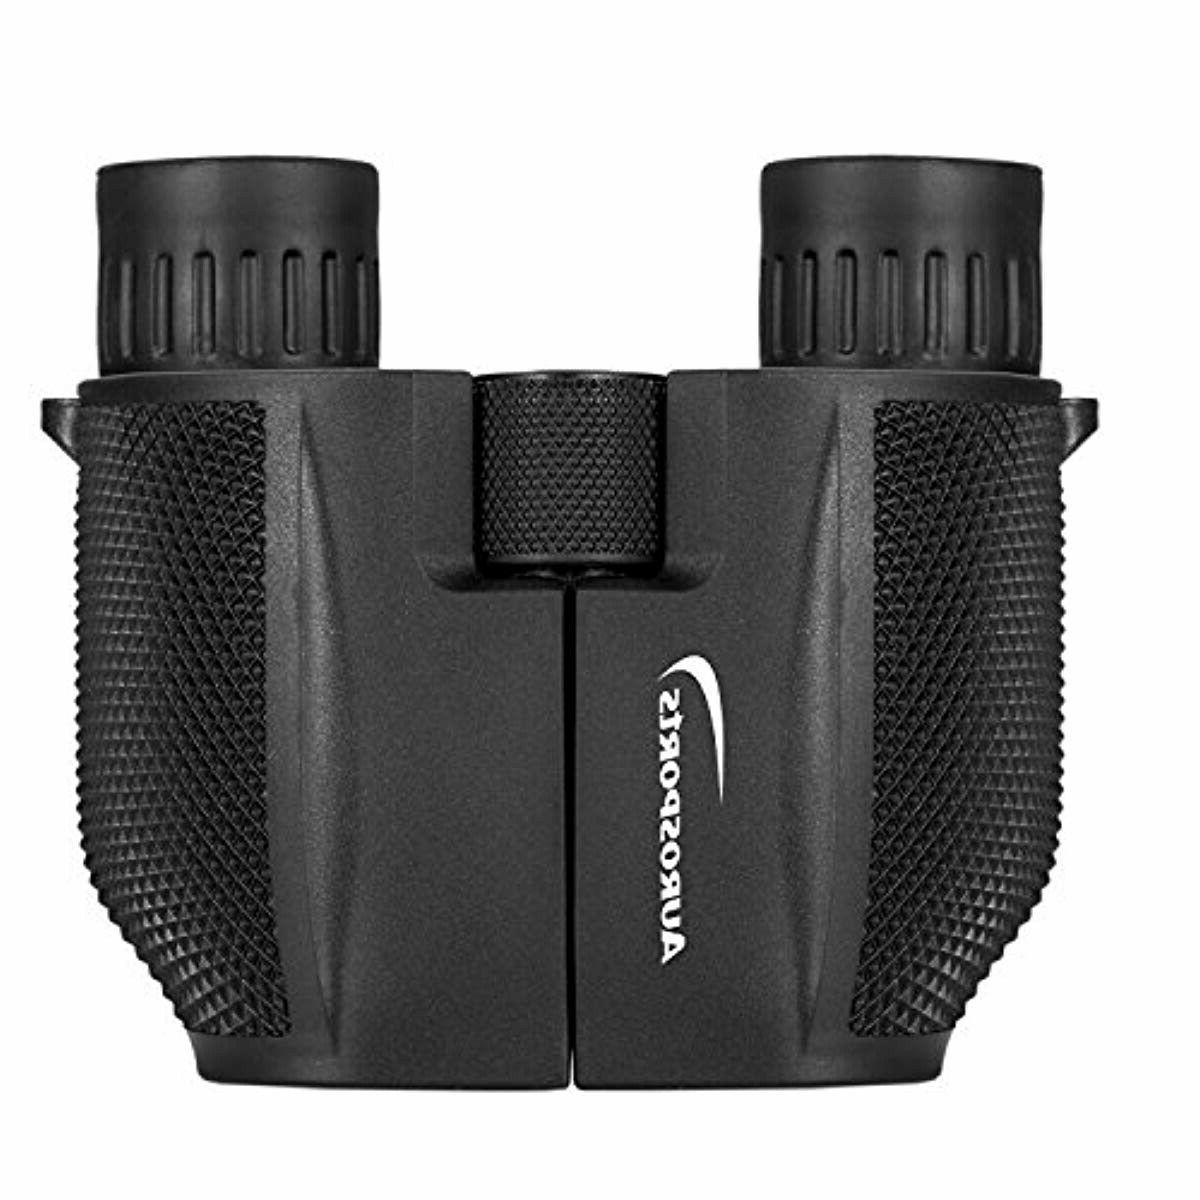 Aurosports 10x25 Weak Light Vision Clear Watching